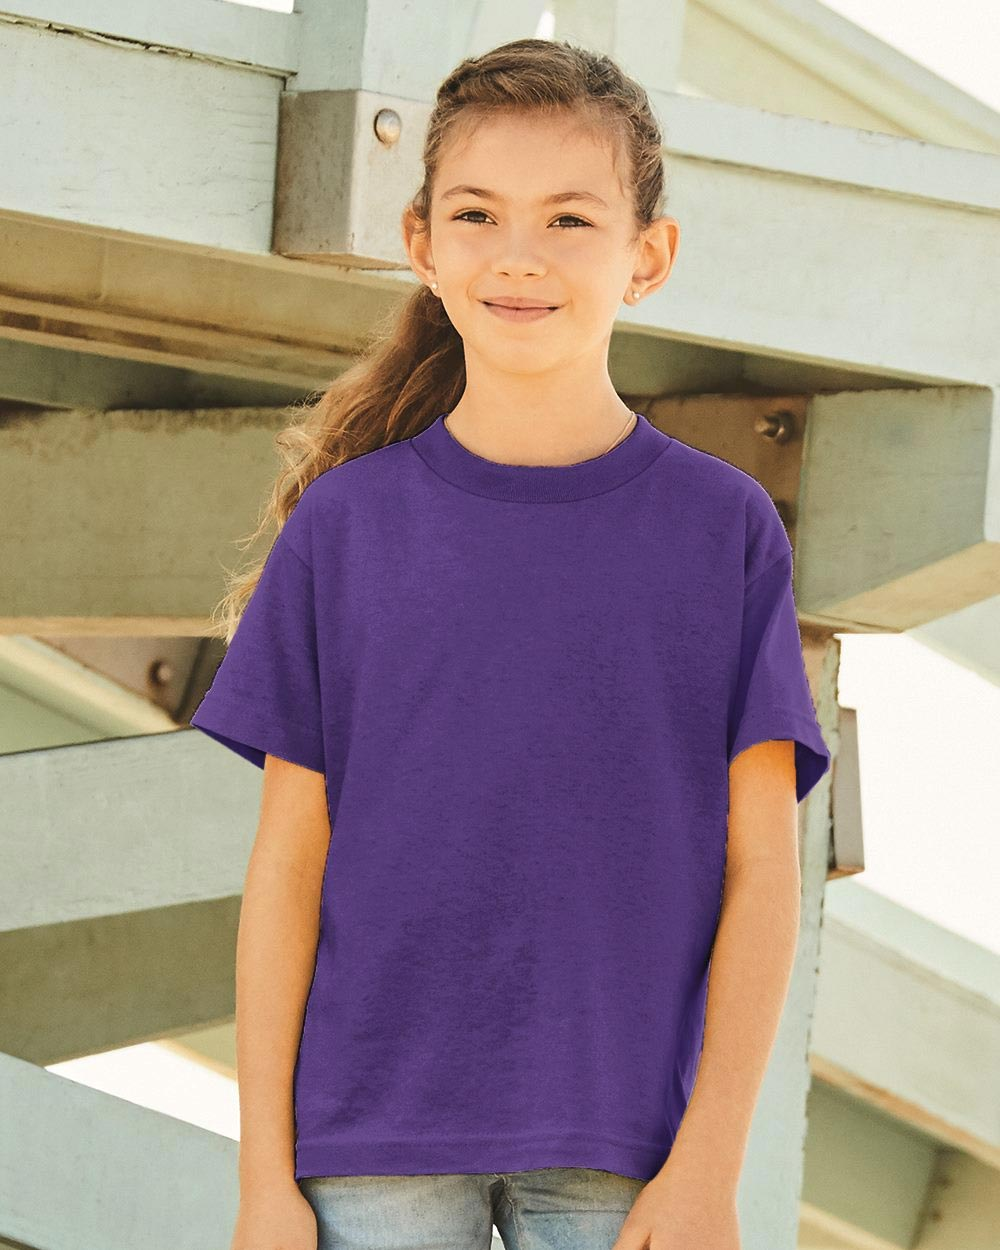 Alstyle 3381 - Youth Classic T-Shirt